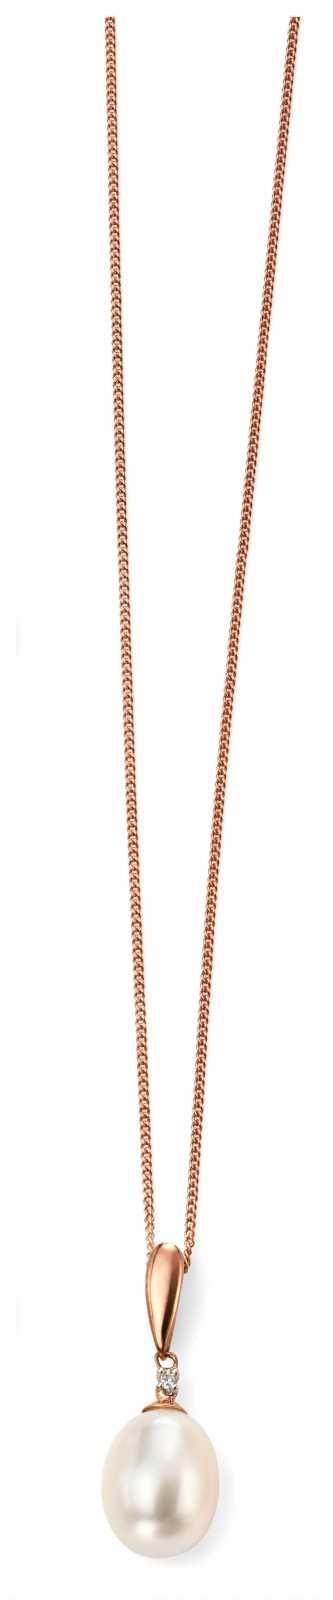 Elements Gold 9k Rose Gold Diamond Pearl Pendant Only GP971W